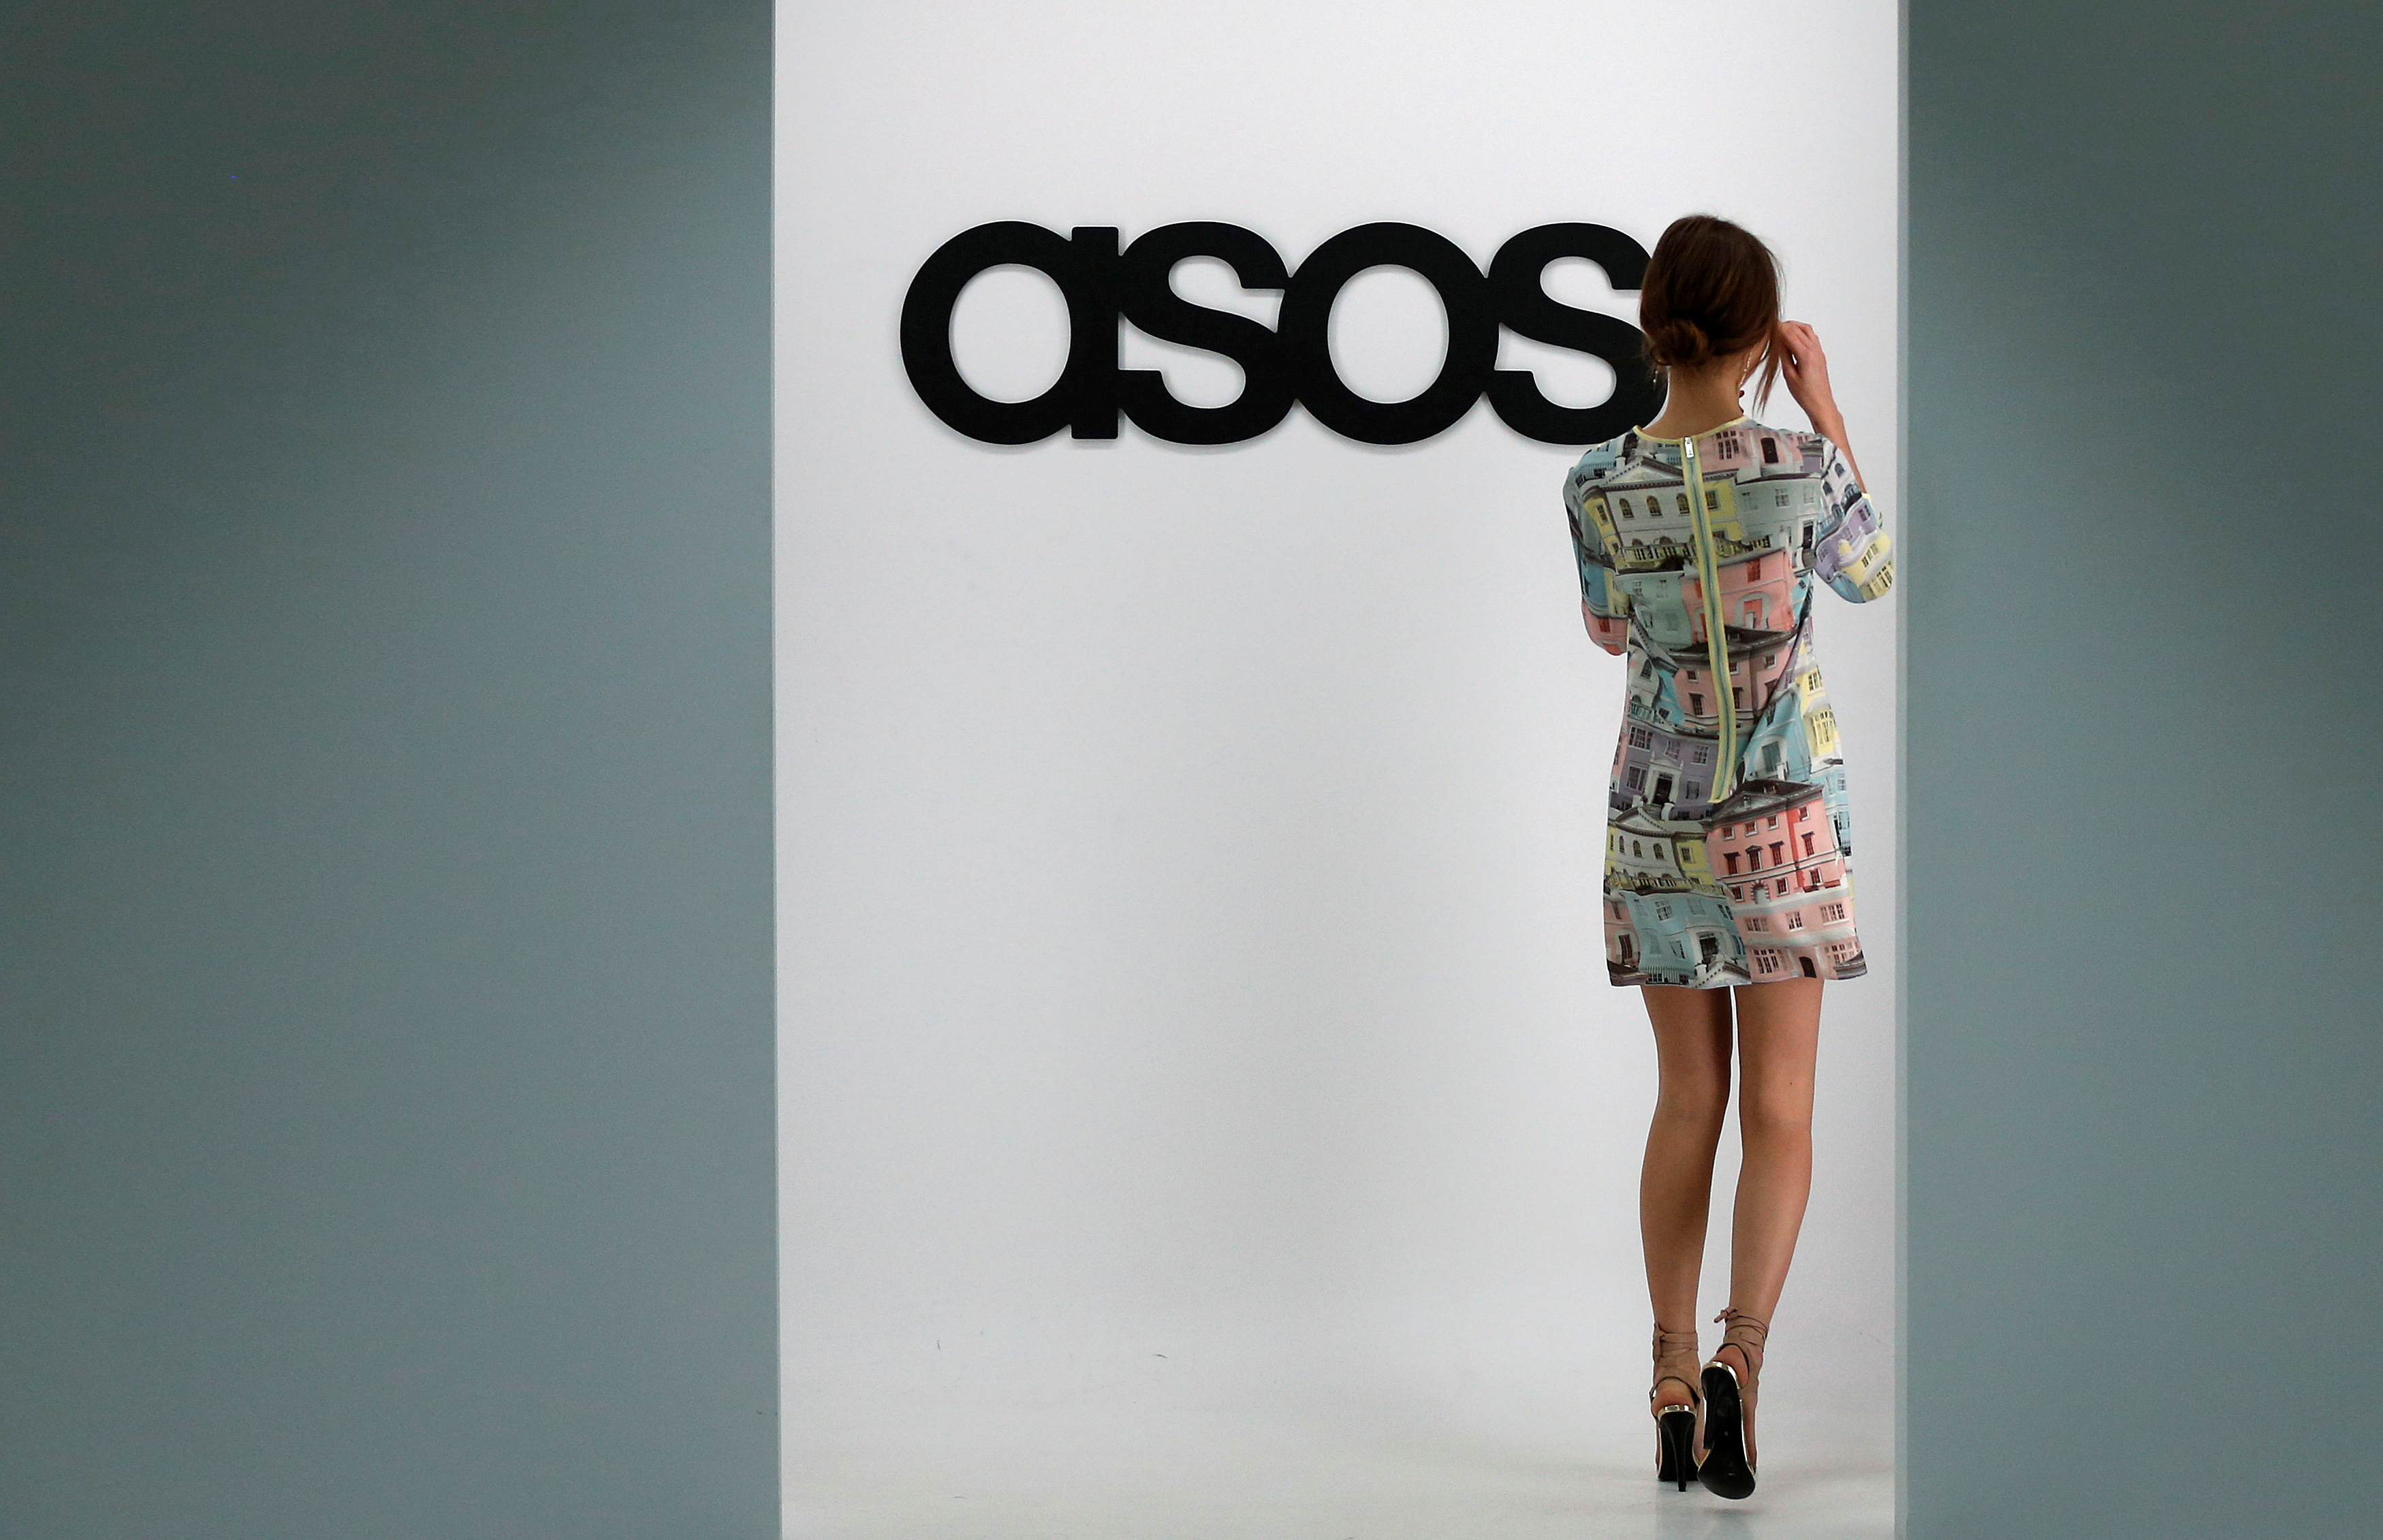 A model walks on an in-house catwalk at the headquarters of British online fashion retailer ASOS in London, Britain, April 1, 2014. REUTERS/Suzanne Plunkett//File Photo